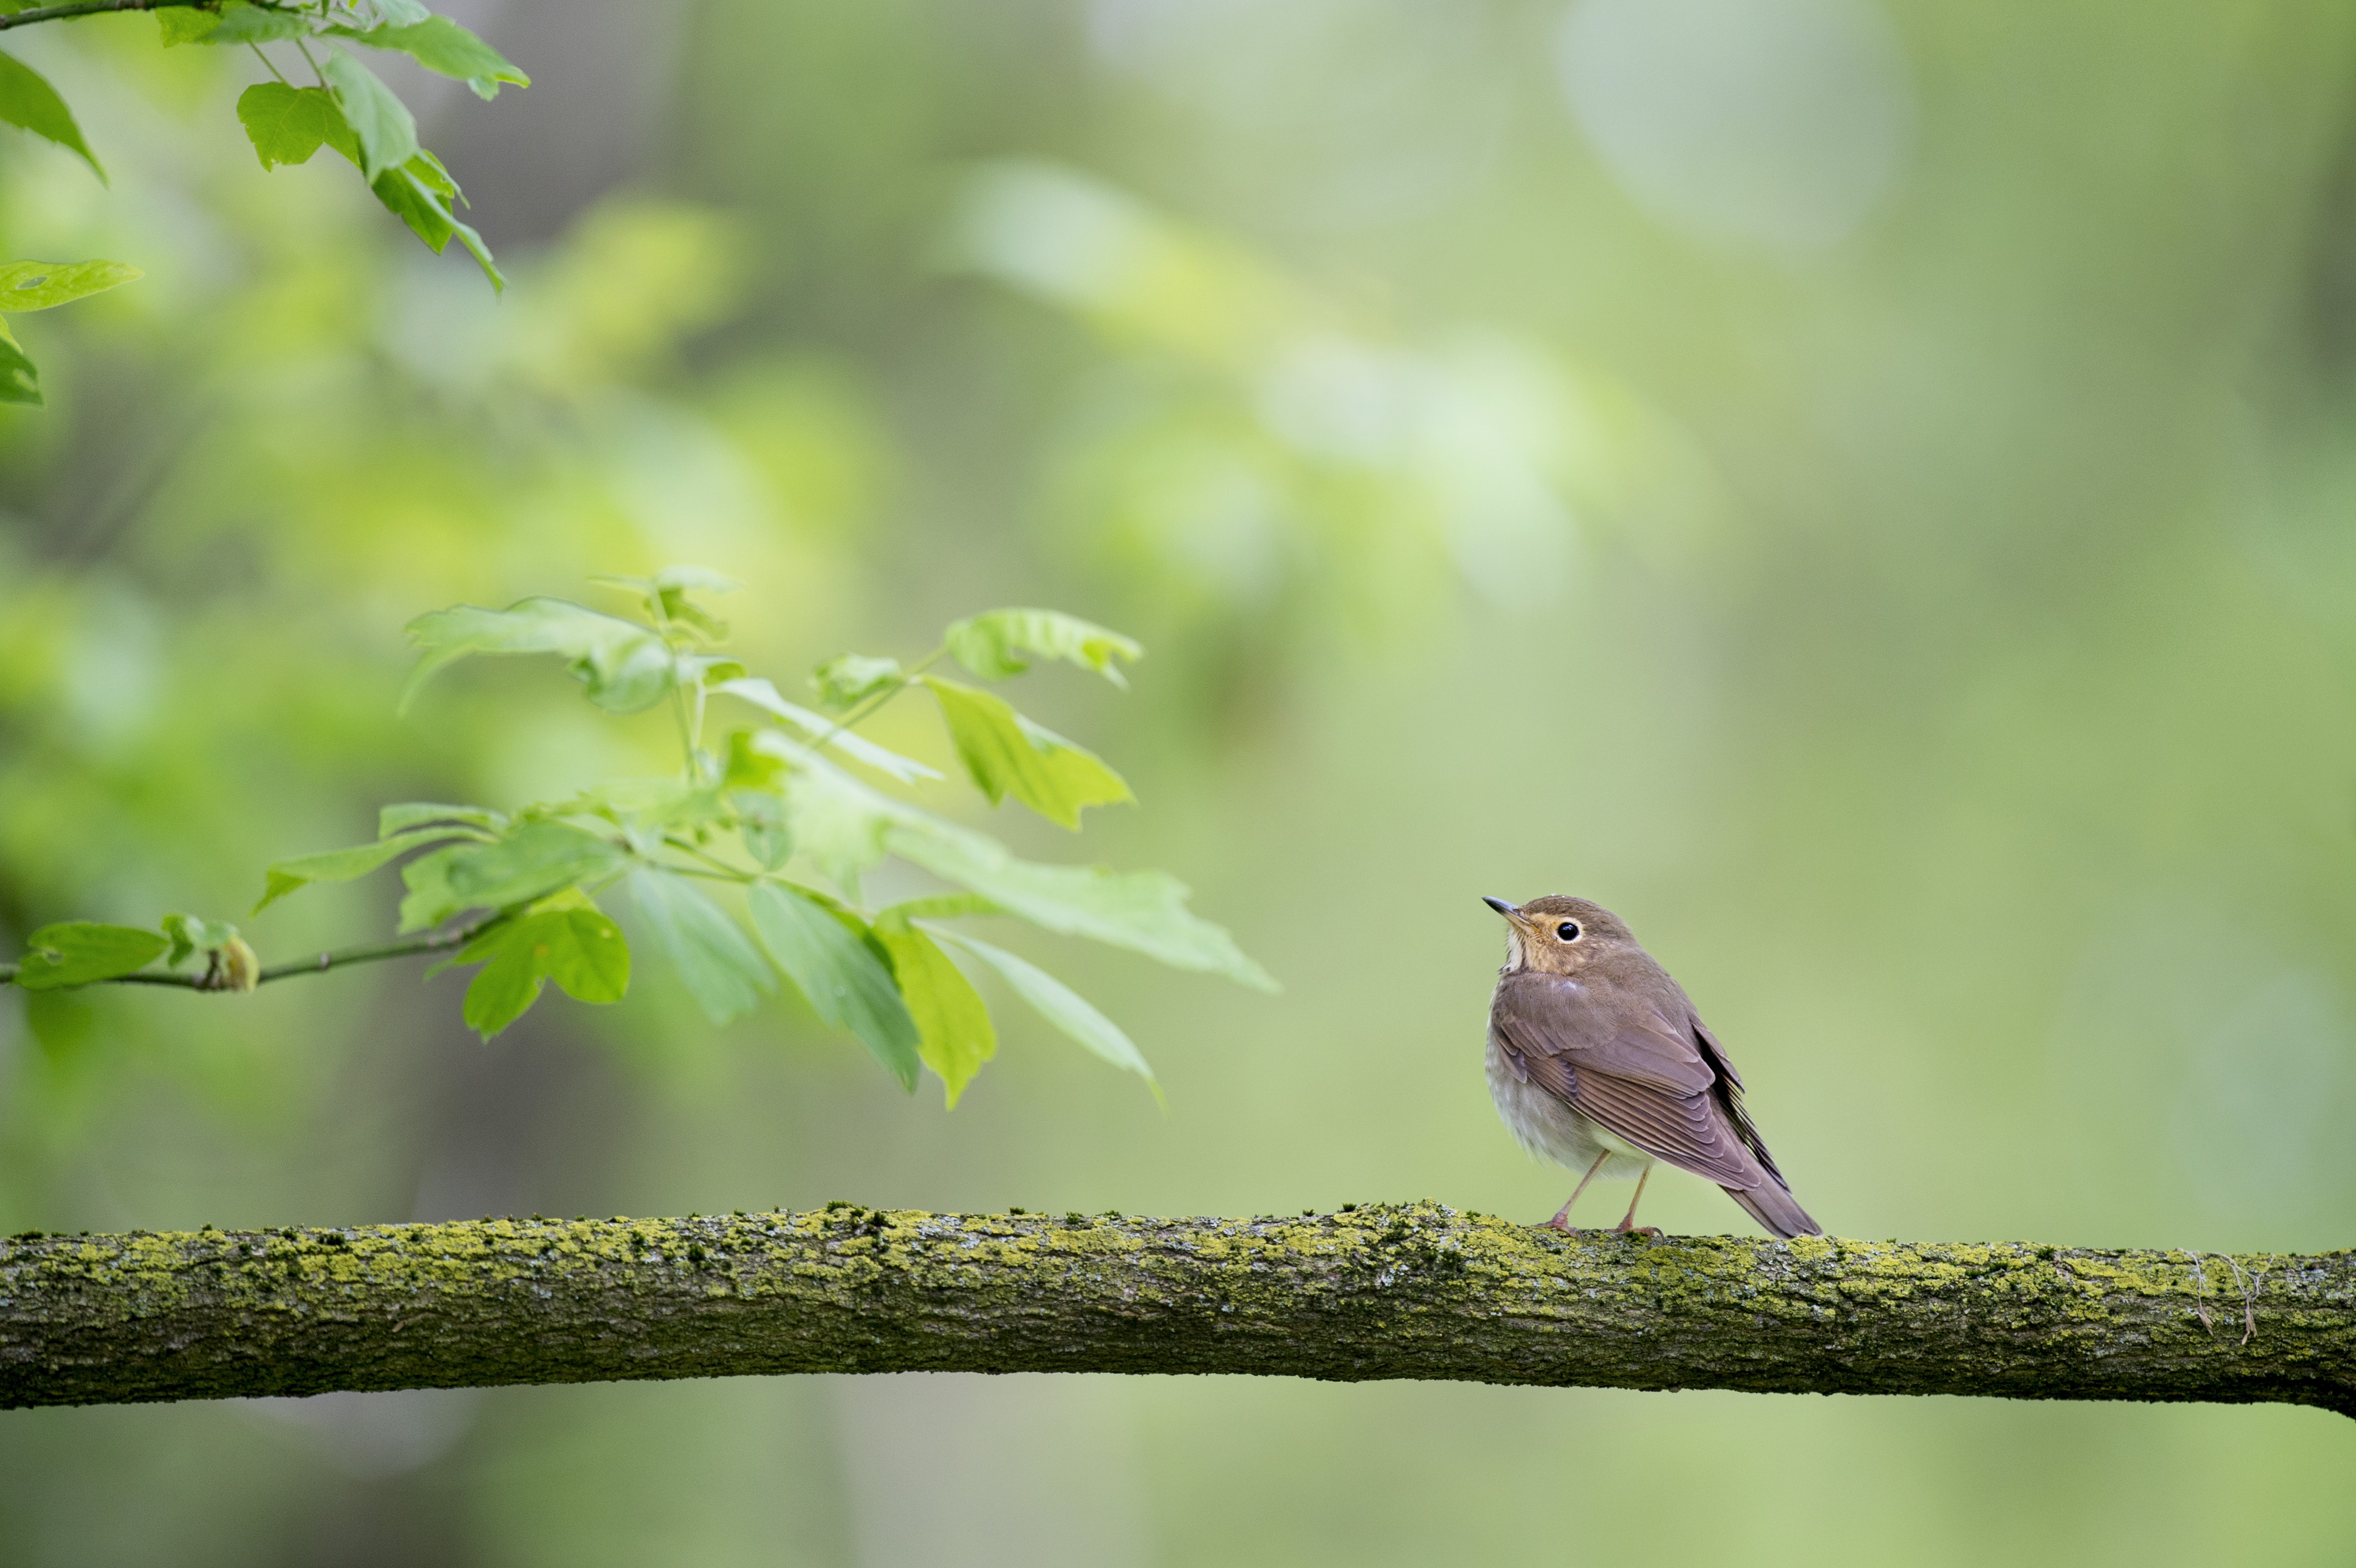 shallow focus photography of bird on tree trunk during daytime